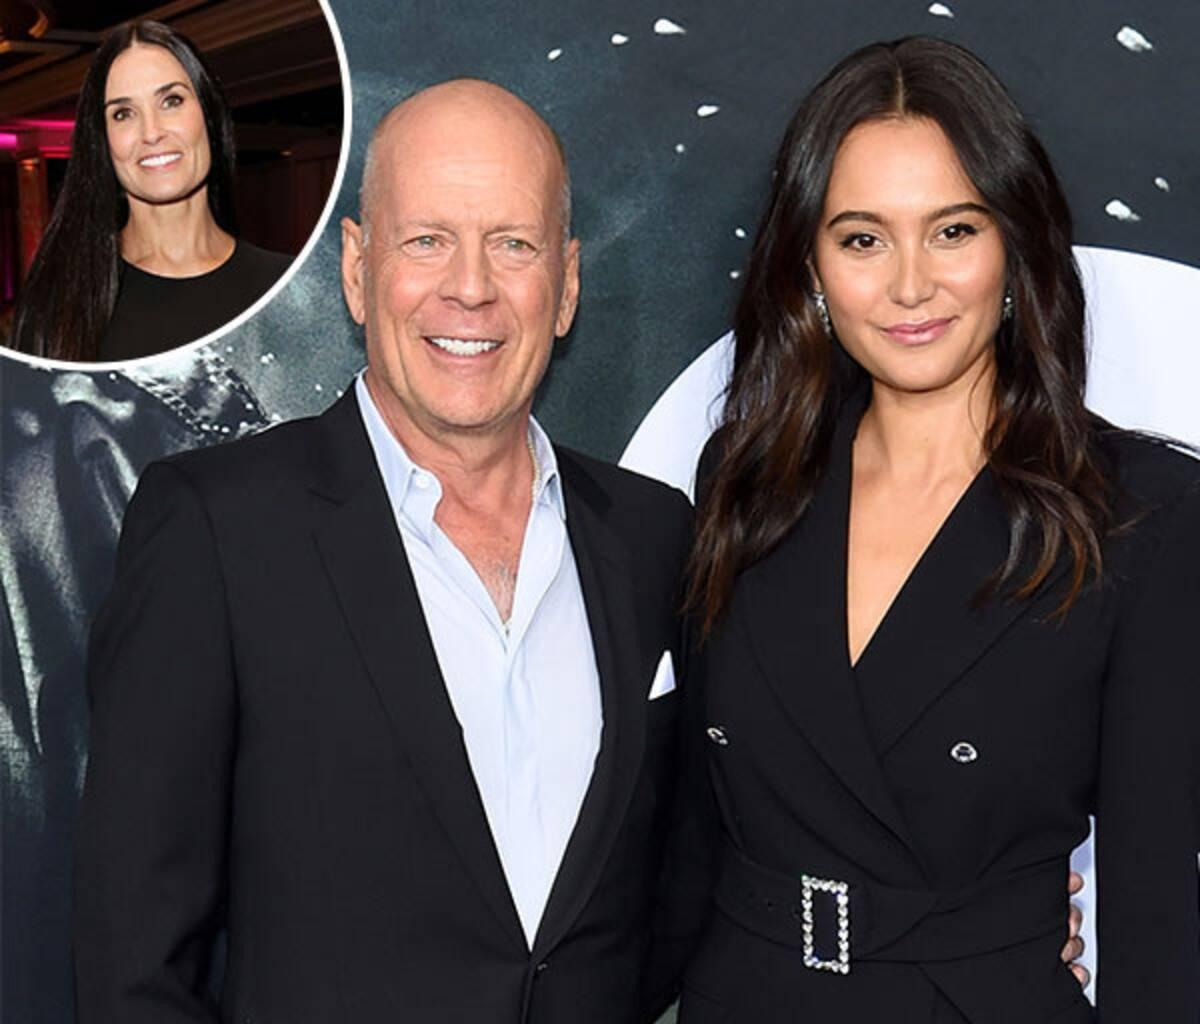 Bruce Willis, Former Wife Demi Moore And Current Wife Emma Bonding In Joint Quarantine - Check Out Their New Video!